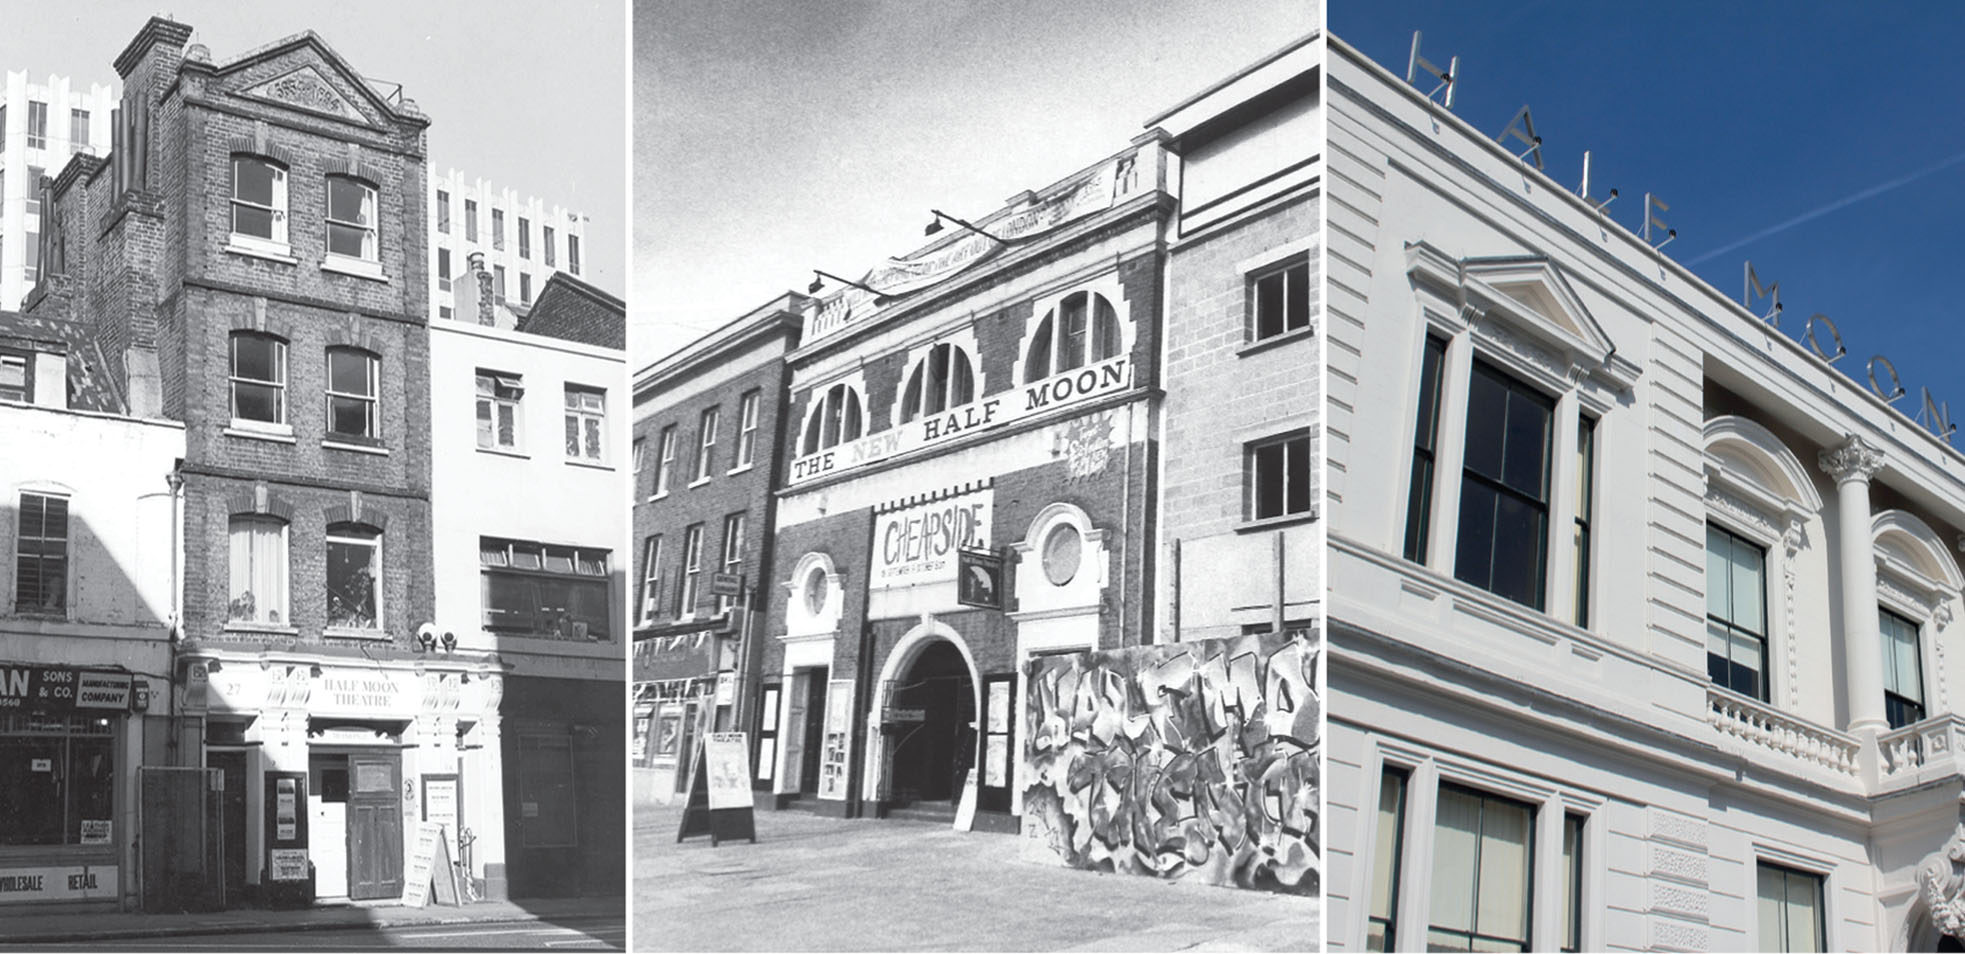 Half Moon Theatre: (L-R) Alie Street, Mile End Road (photo by Conrad Blakemore), White Horse Road